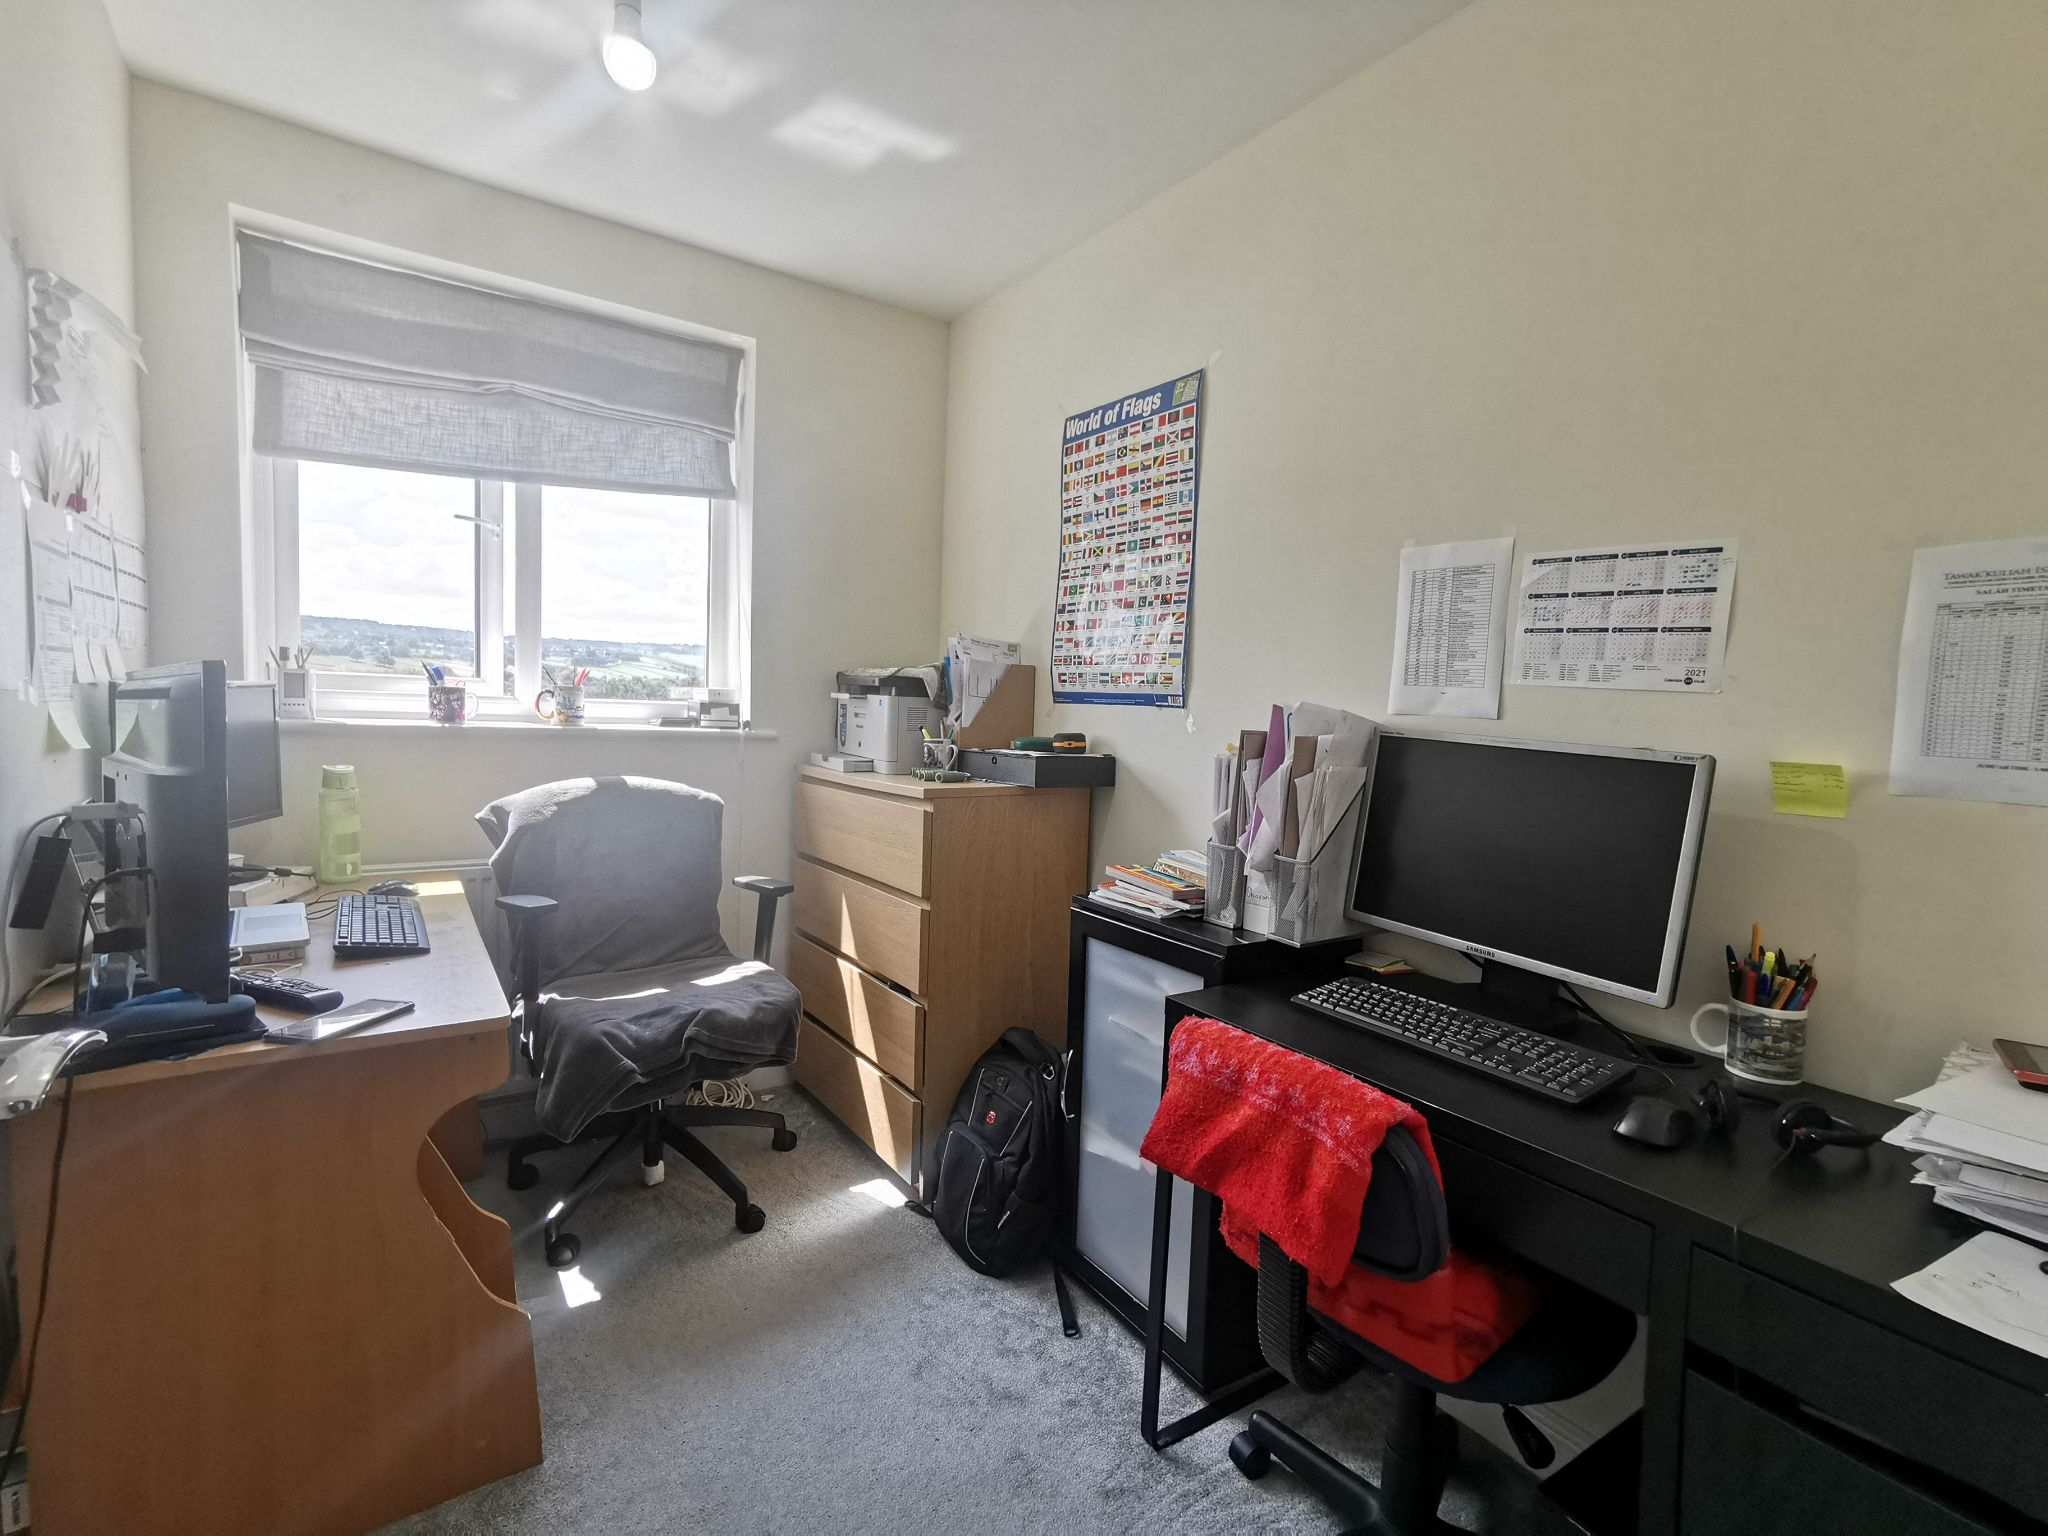 3 bedroom end terraced house For Sale in Bradford - Photograph 10.